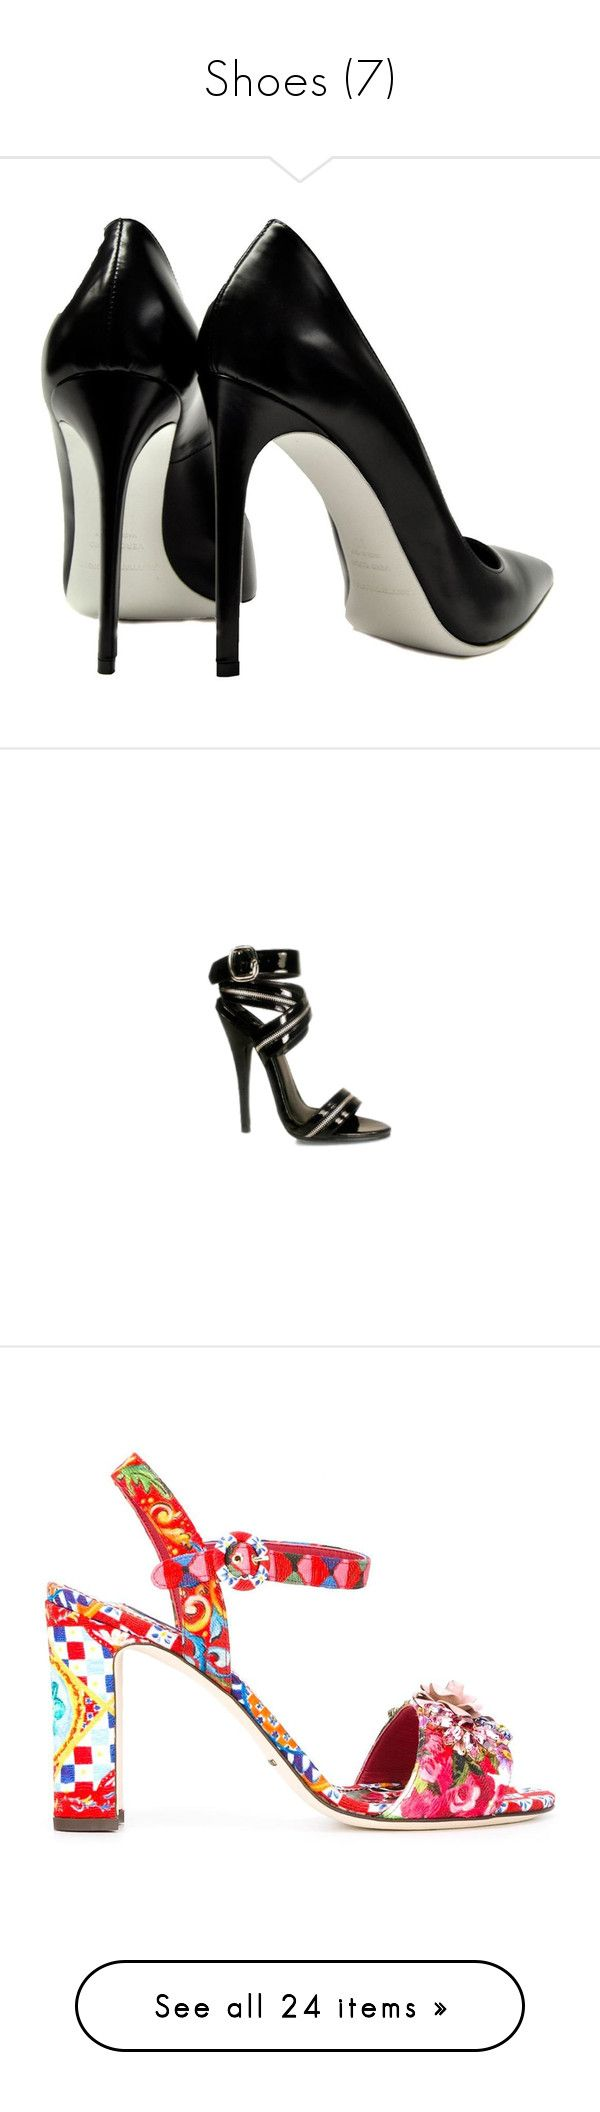 """Shoes (7)"" by asia-12 ❤ liked on Polyvore featuring shoes, pumps, heels, heel pump, pearl shoes, pearl pumps, gianmarco lorenzi, gianmarco lorenzi shoes, sandals and strap sandals"